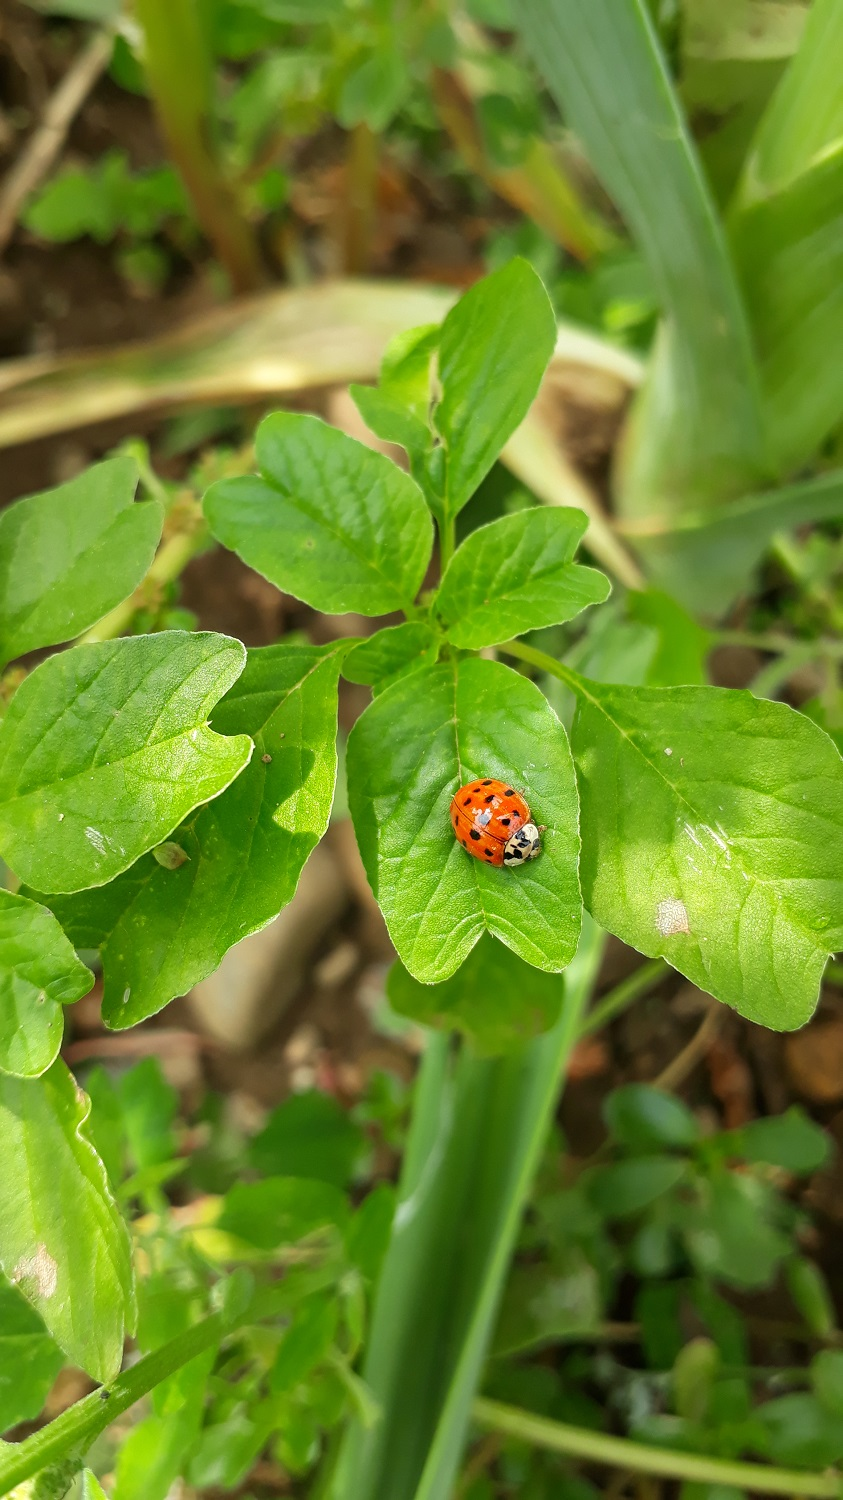 Ladybird on a weed plant.